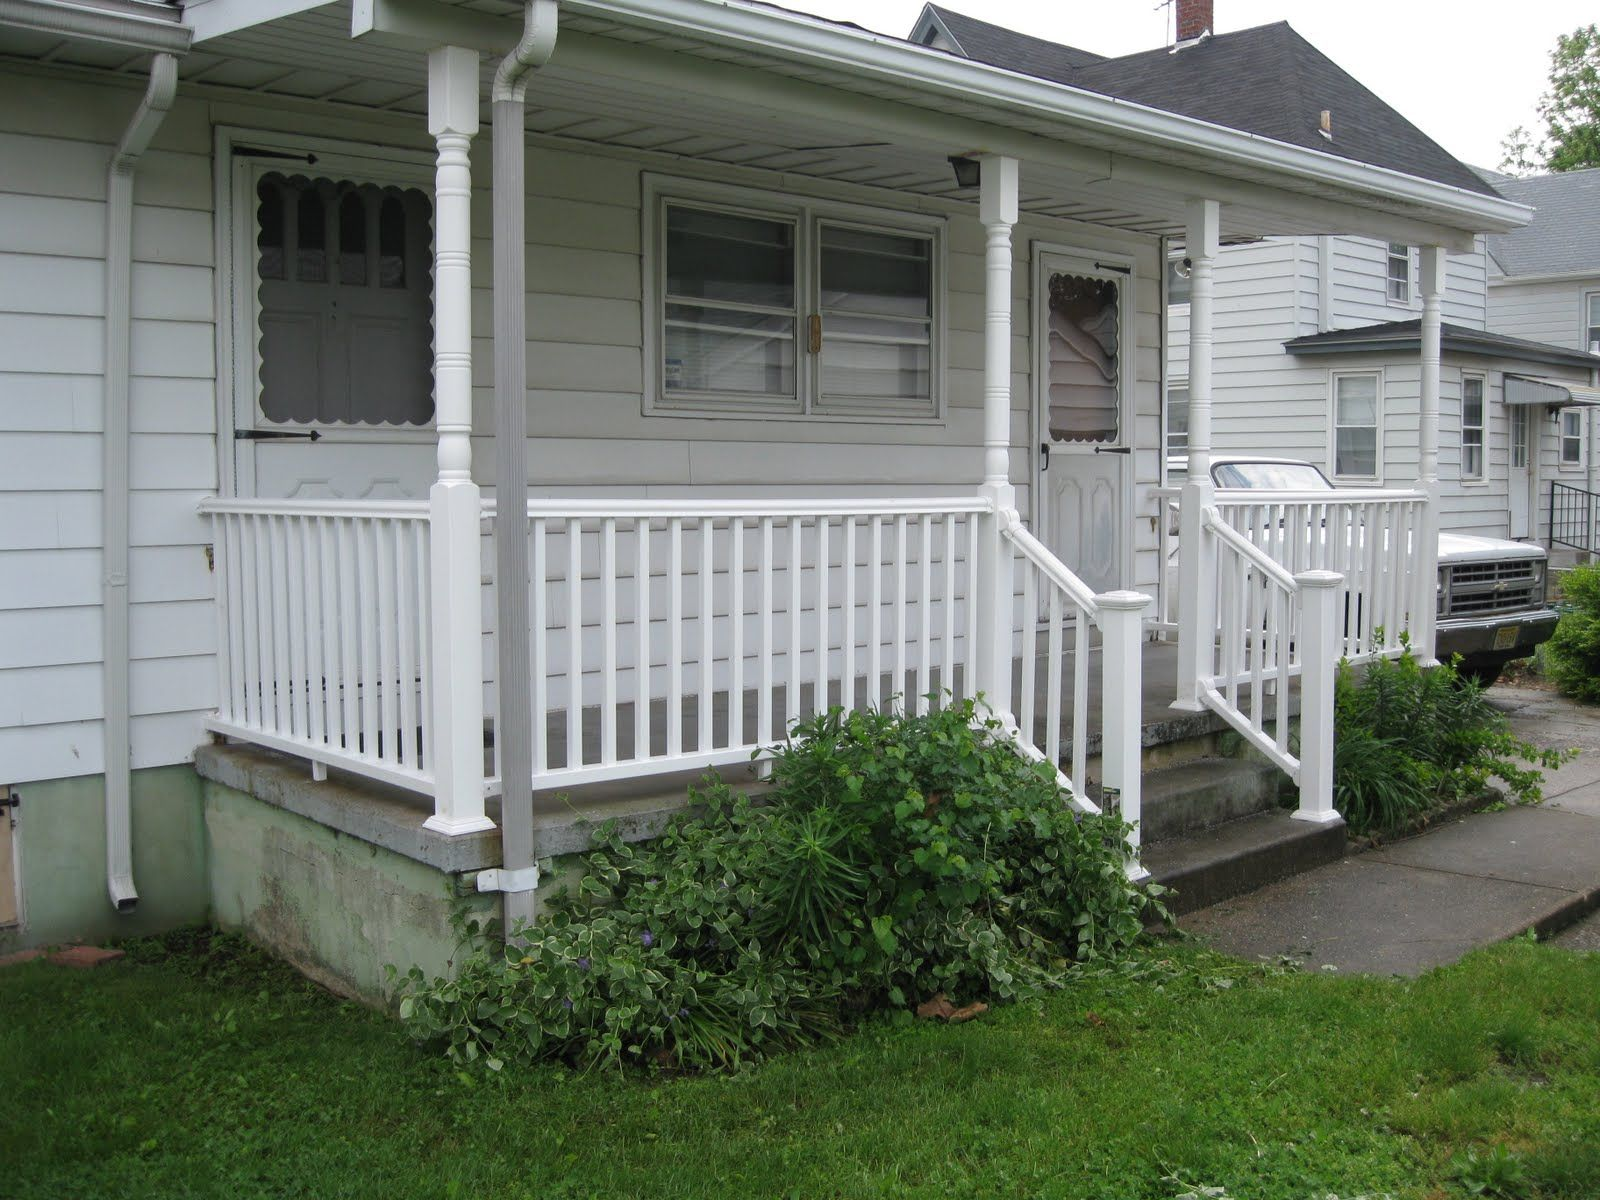 Small front porches porch railing front porch for Front porch patio ideas